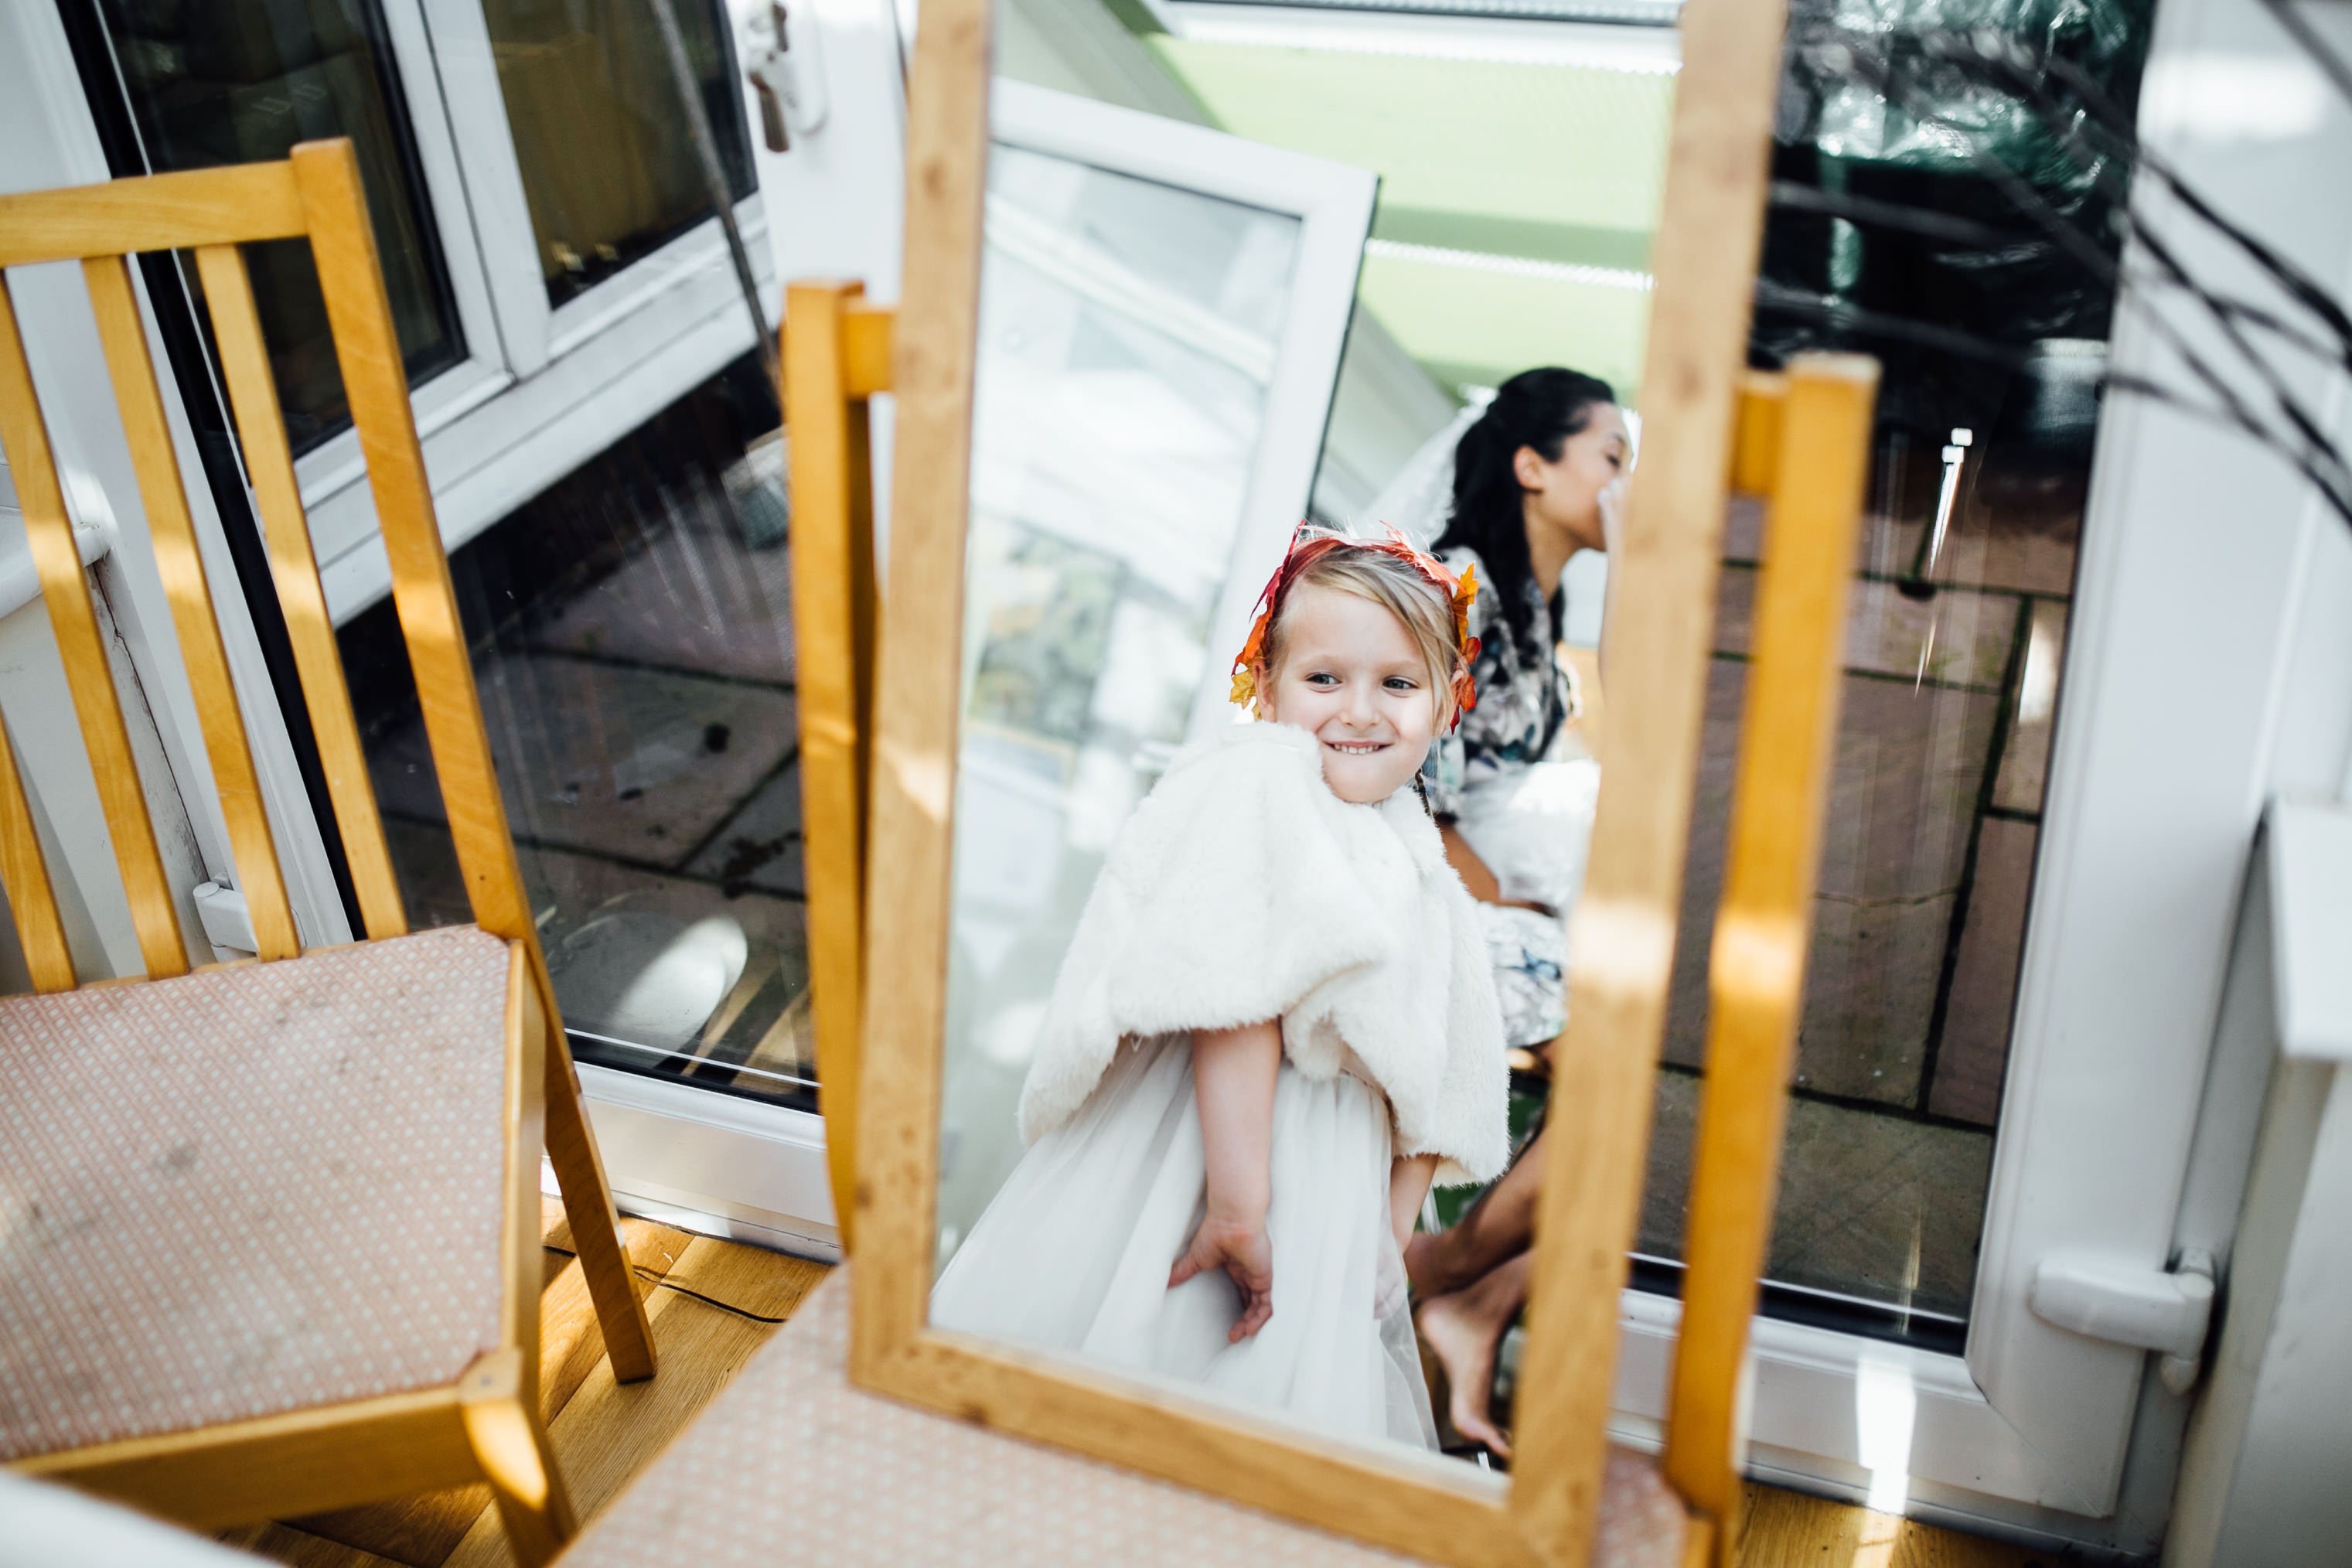 quirky fun autumn wedding in london wedding photographer documentary style prep at home